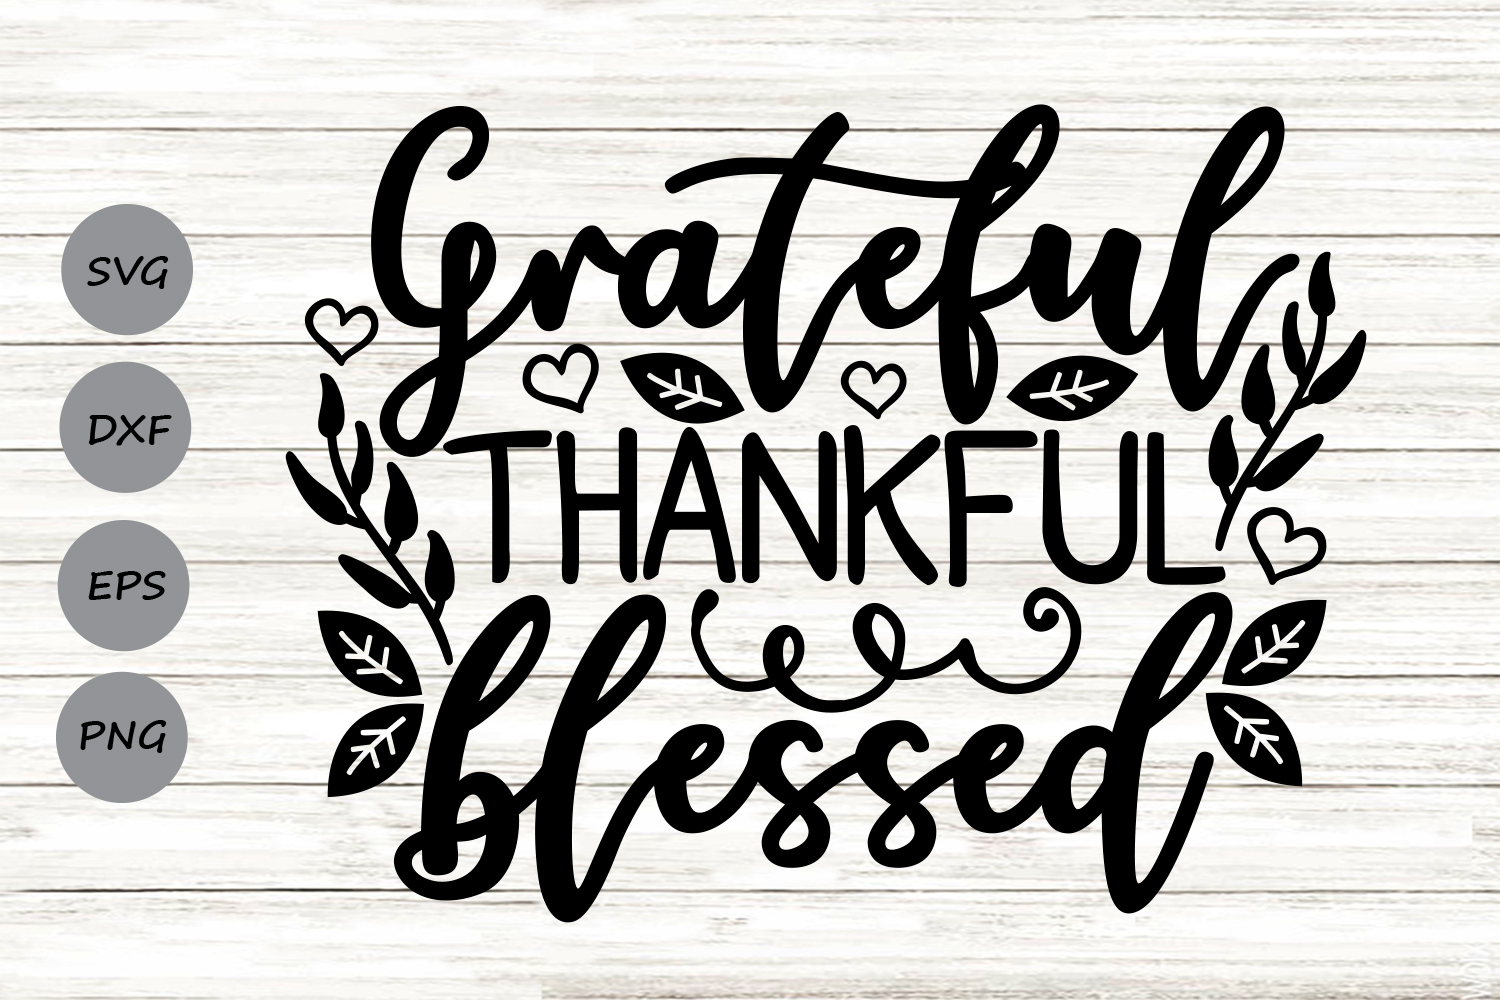 Download Free Grateful Thankful Blessed Svg Graphic By Cosmosfineart for Cricut Explore, Silhouette and other cutting machines.